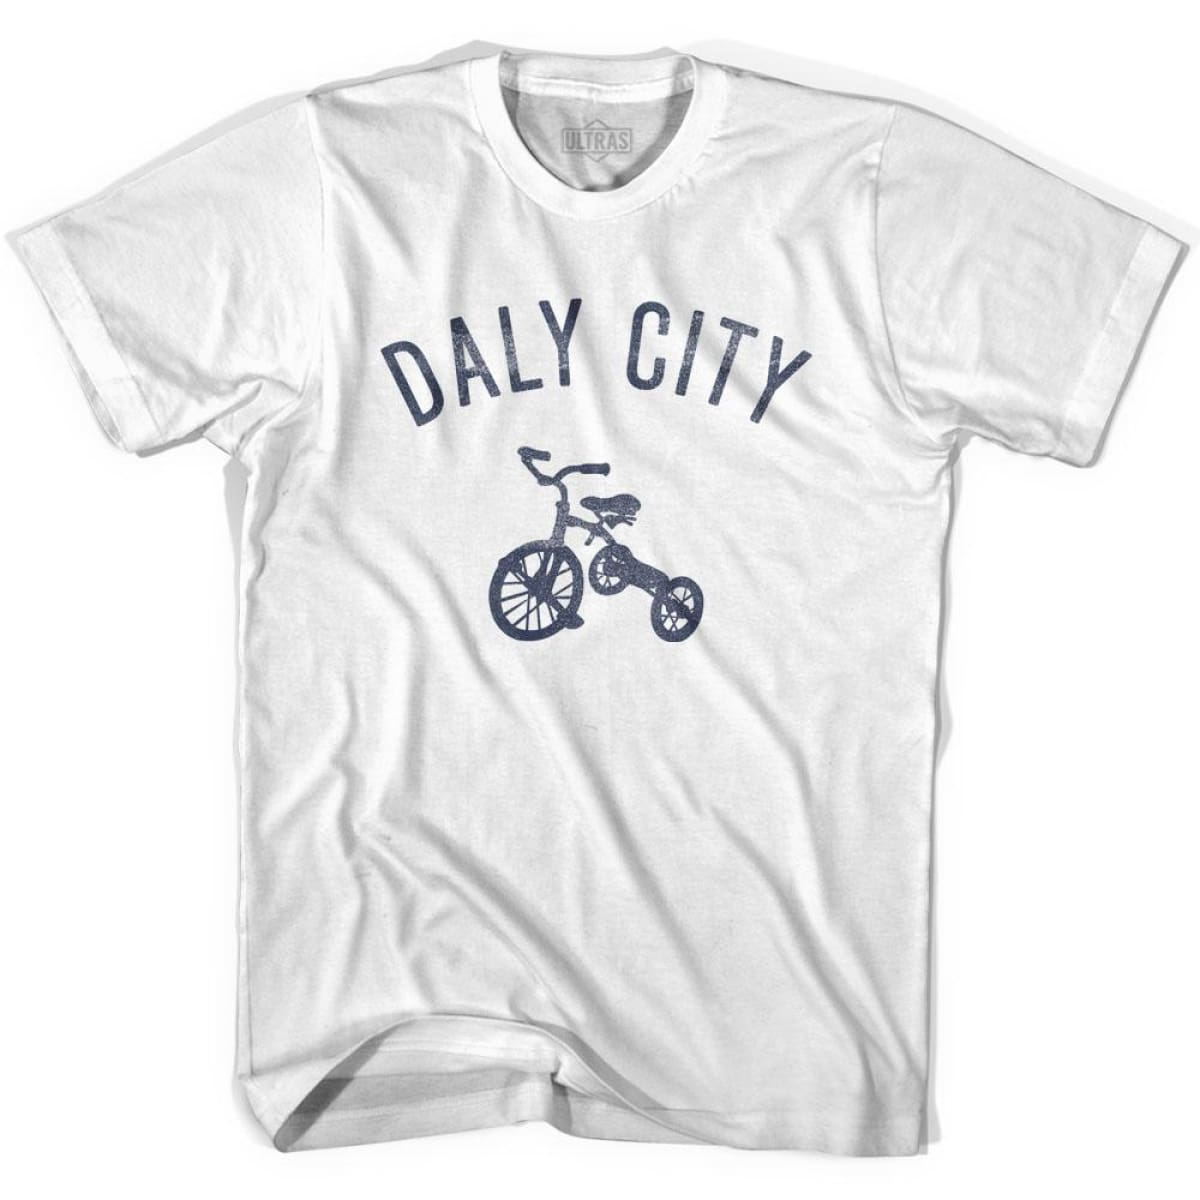 Daly City Tricycle Womens Cotton T-shirt - Tricycle City